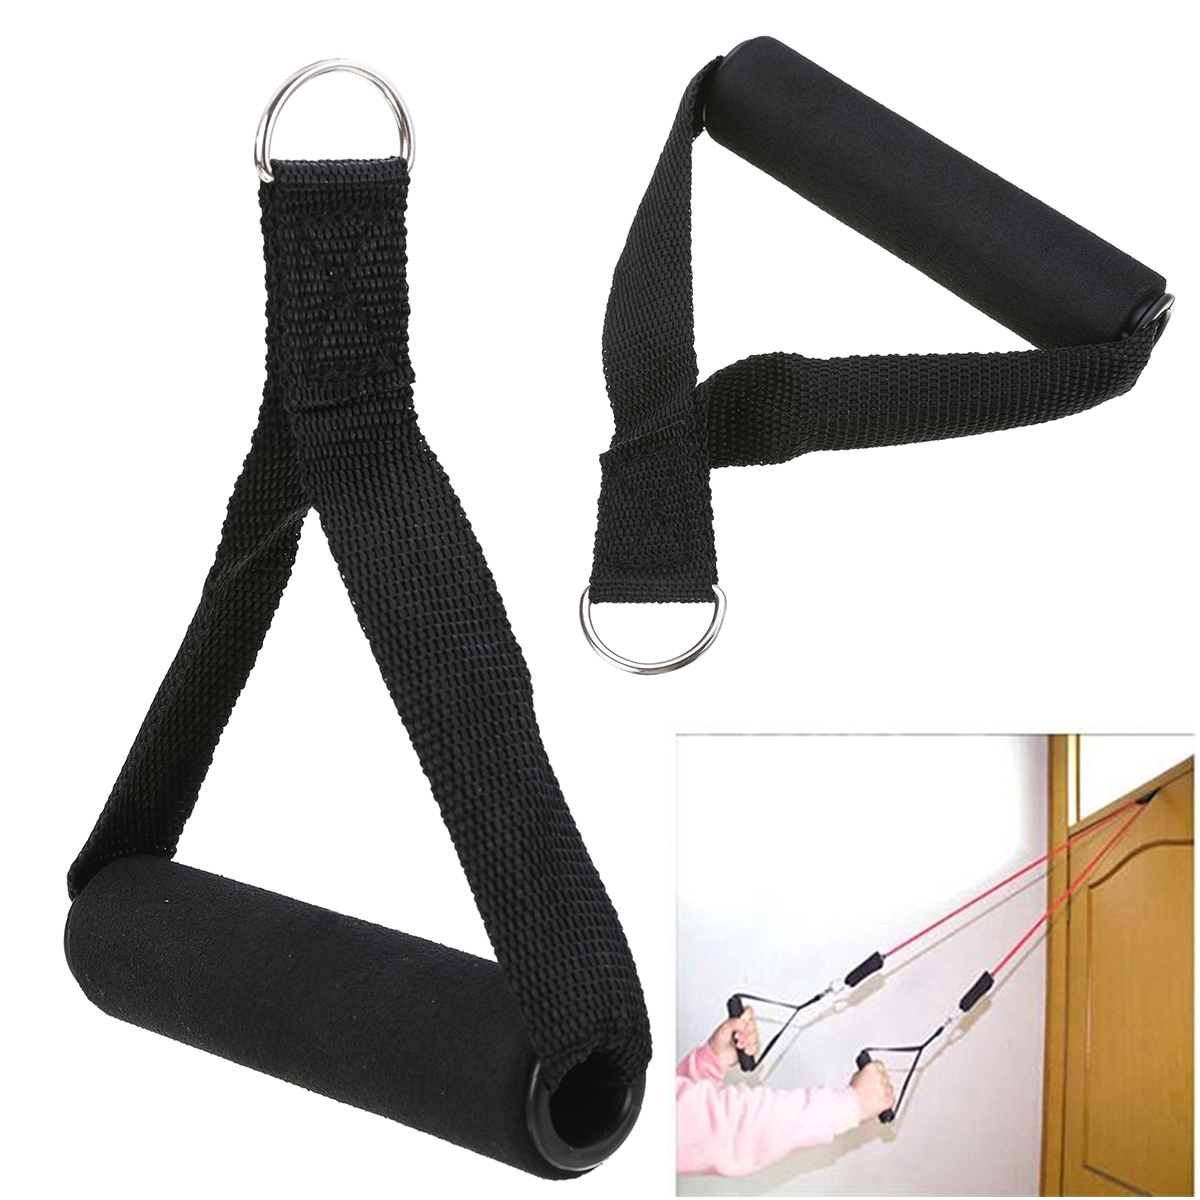 Mayitr Nylon Fitness Accessory Tricep Rope Handle Cable Crossover Gym Machine Attachment Resistance For Body Building